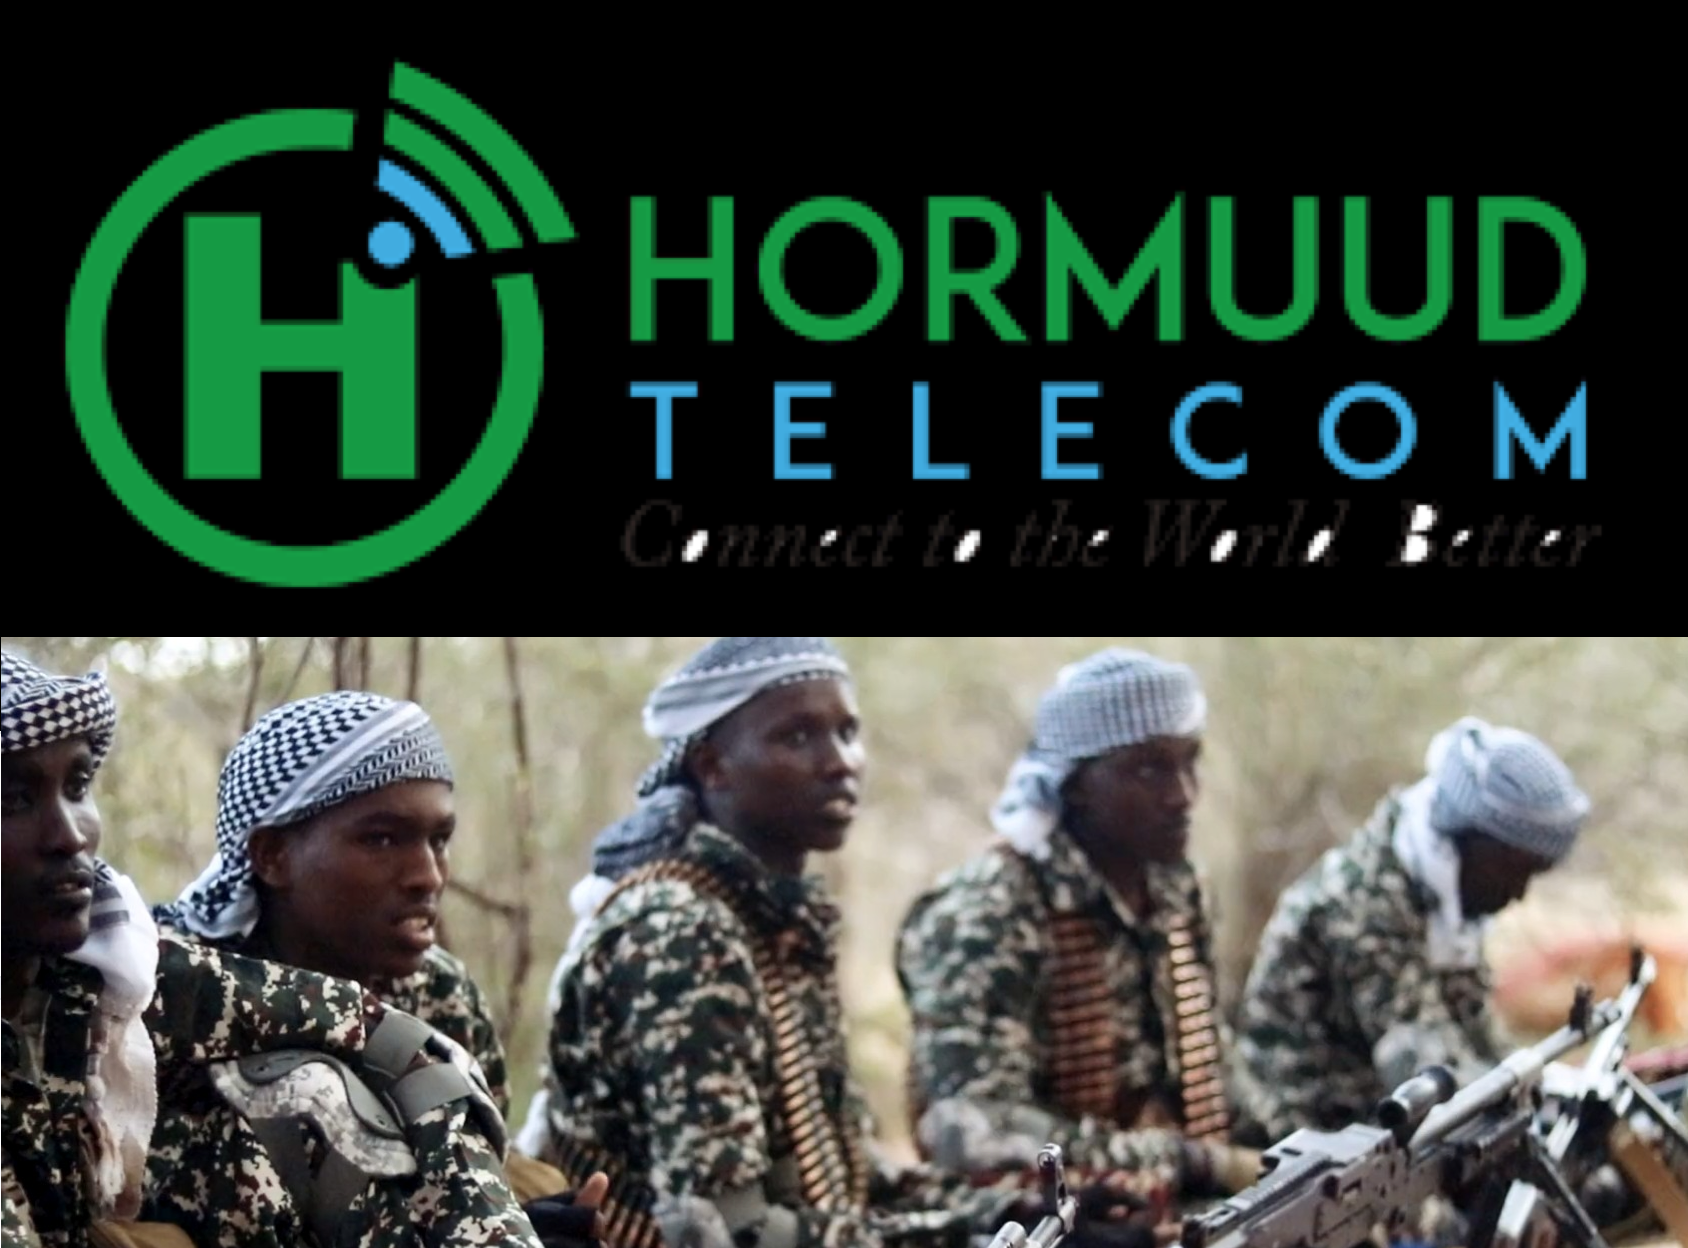 Hormuud Telecom, Taaj Express, Salaam Bank iyo Dahabshiil Money Transfer directly pay taxes to Al-Shabaab.